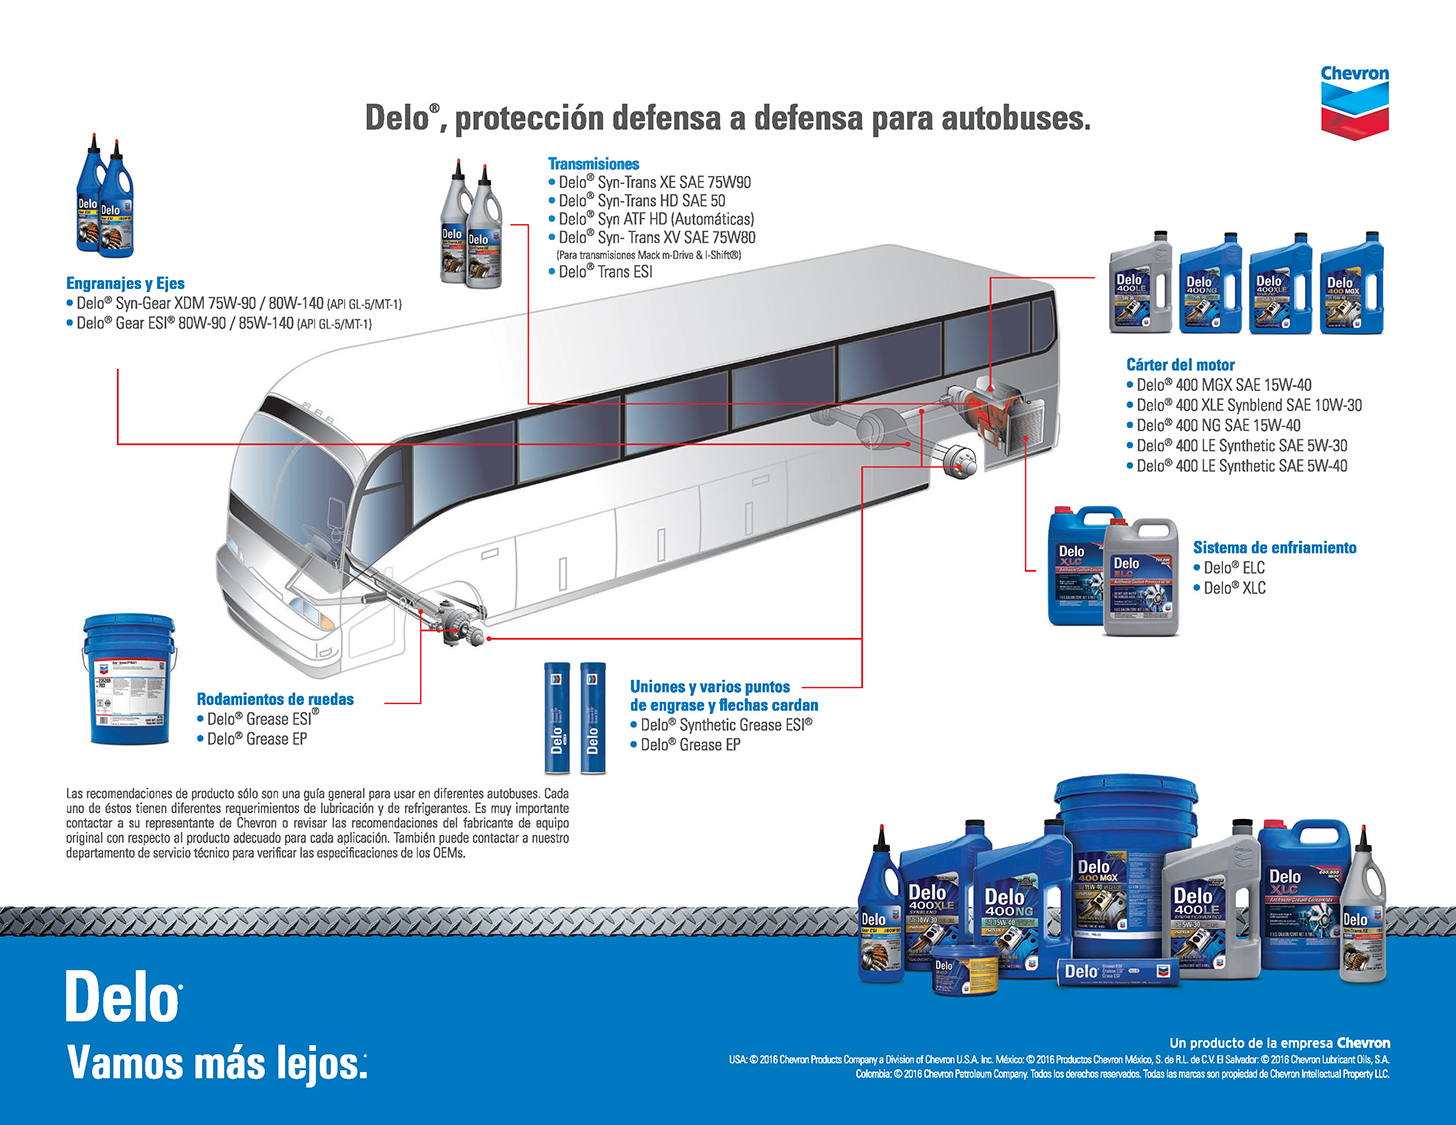 Delo Single axel bus bumper to bumper